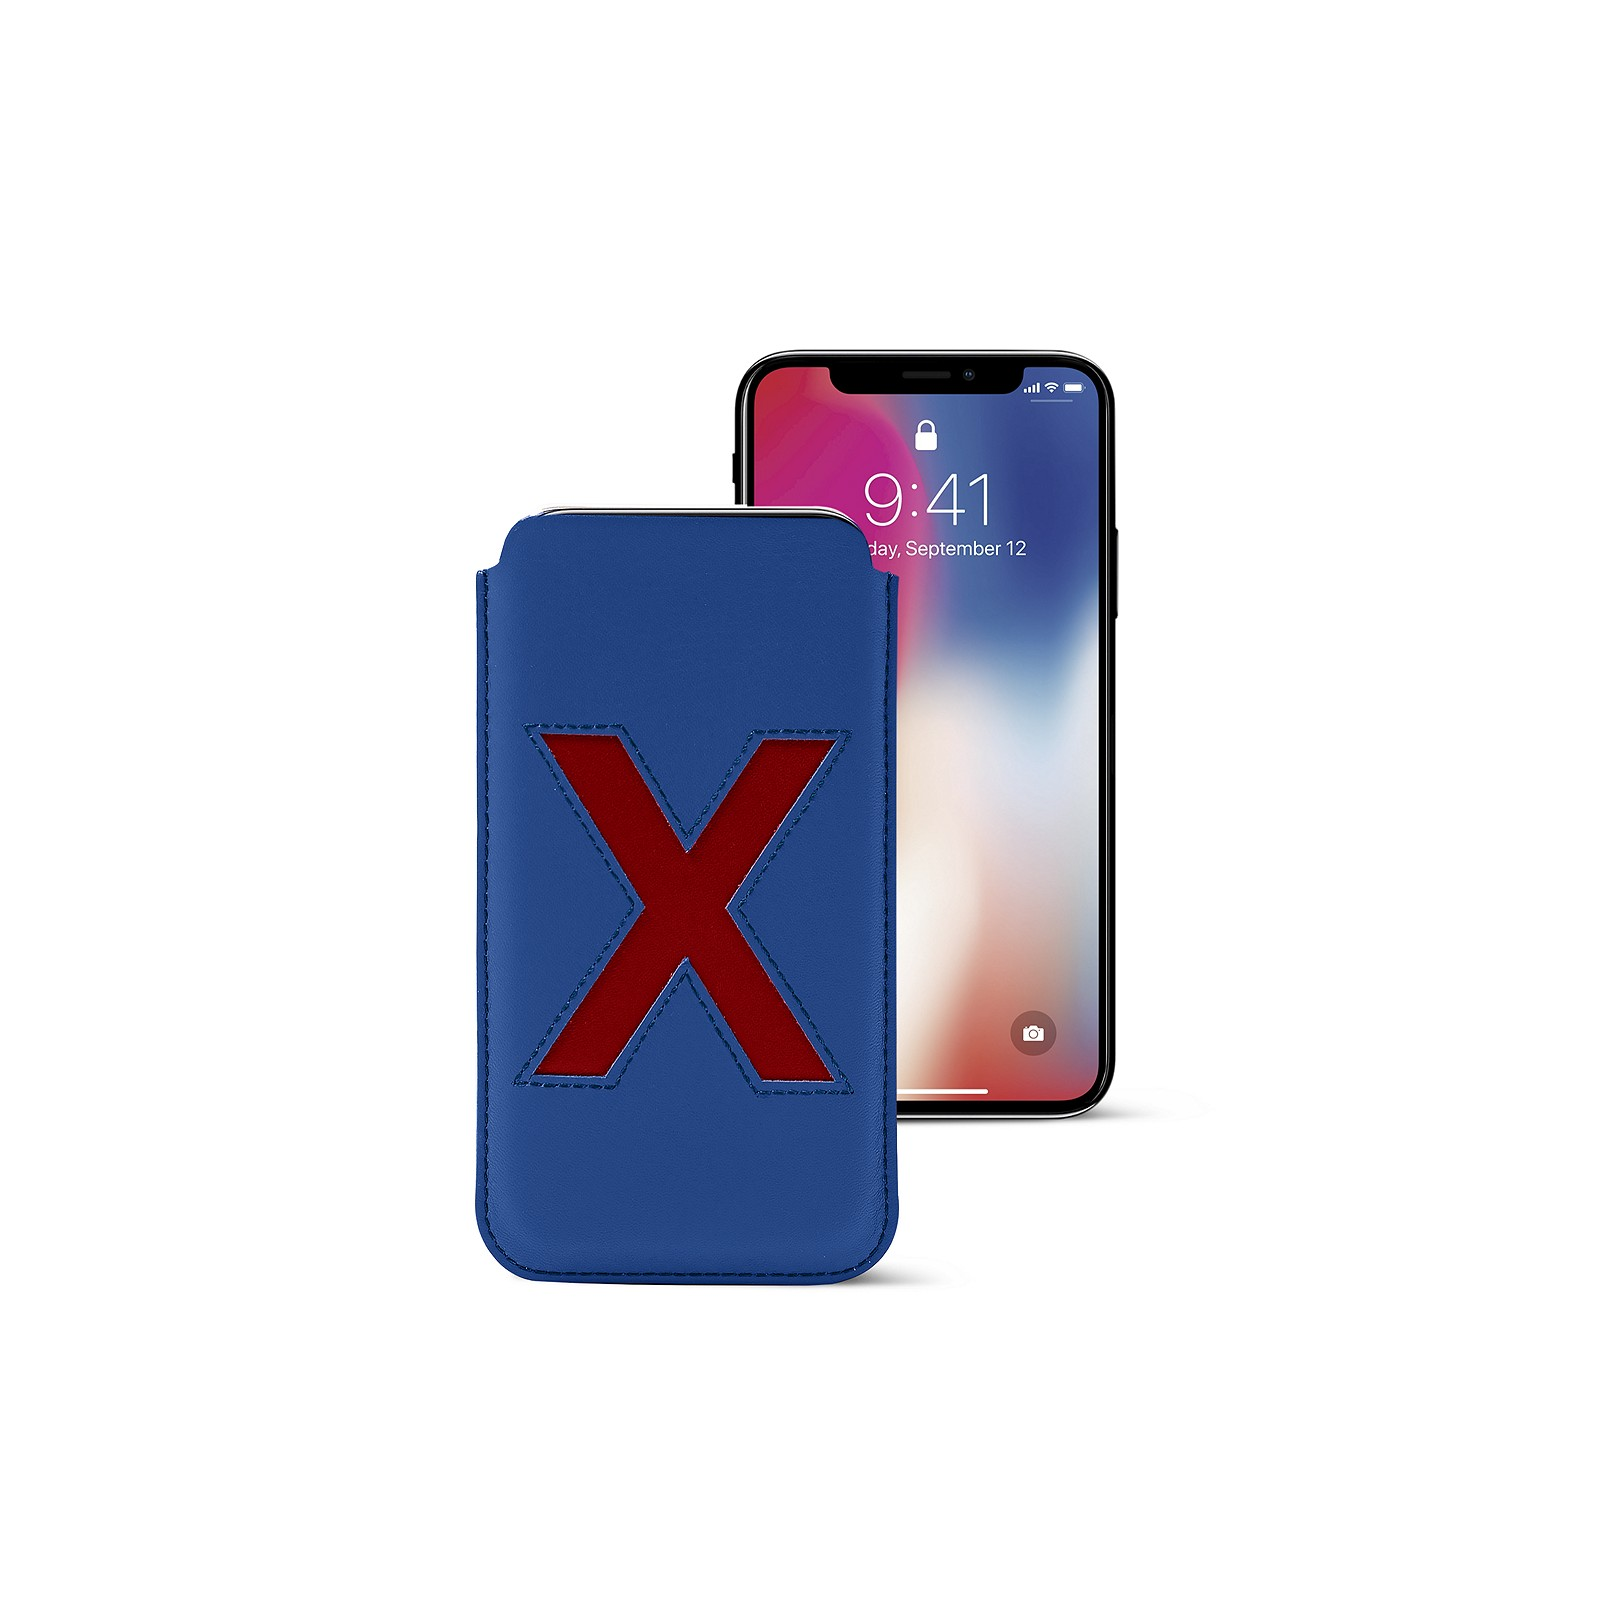 newest dad52 89e42 iPhone X Special Edition Case